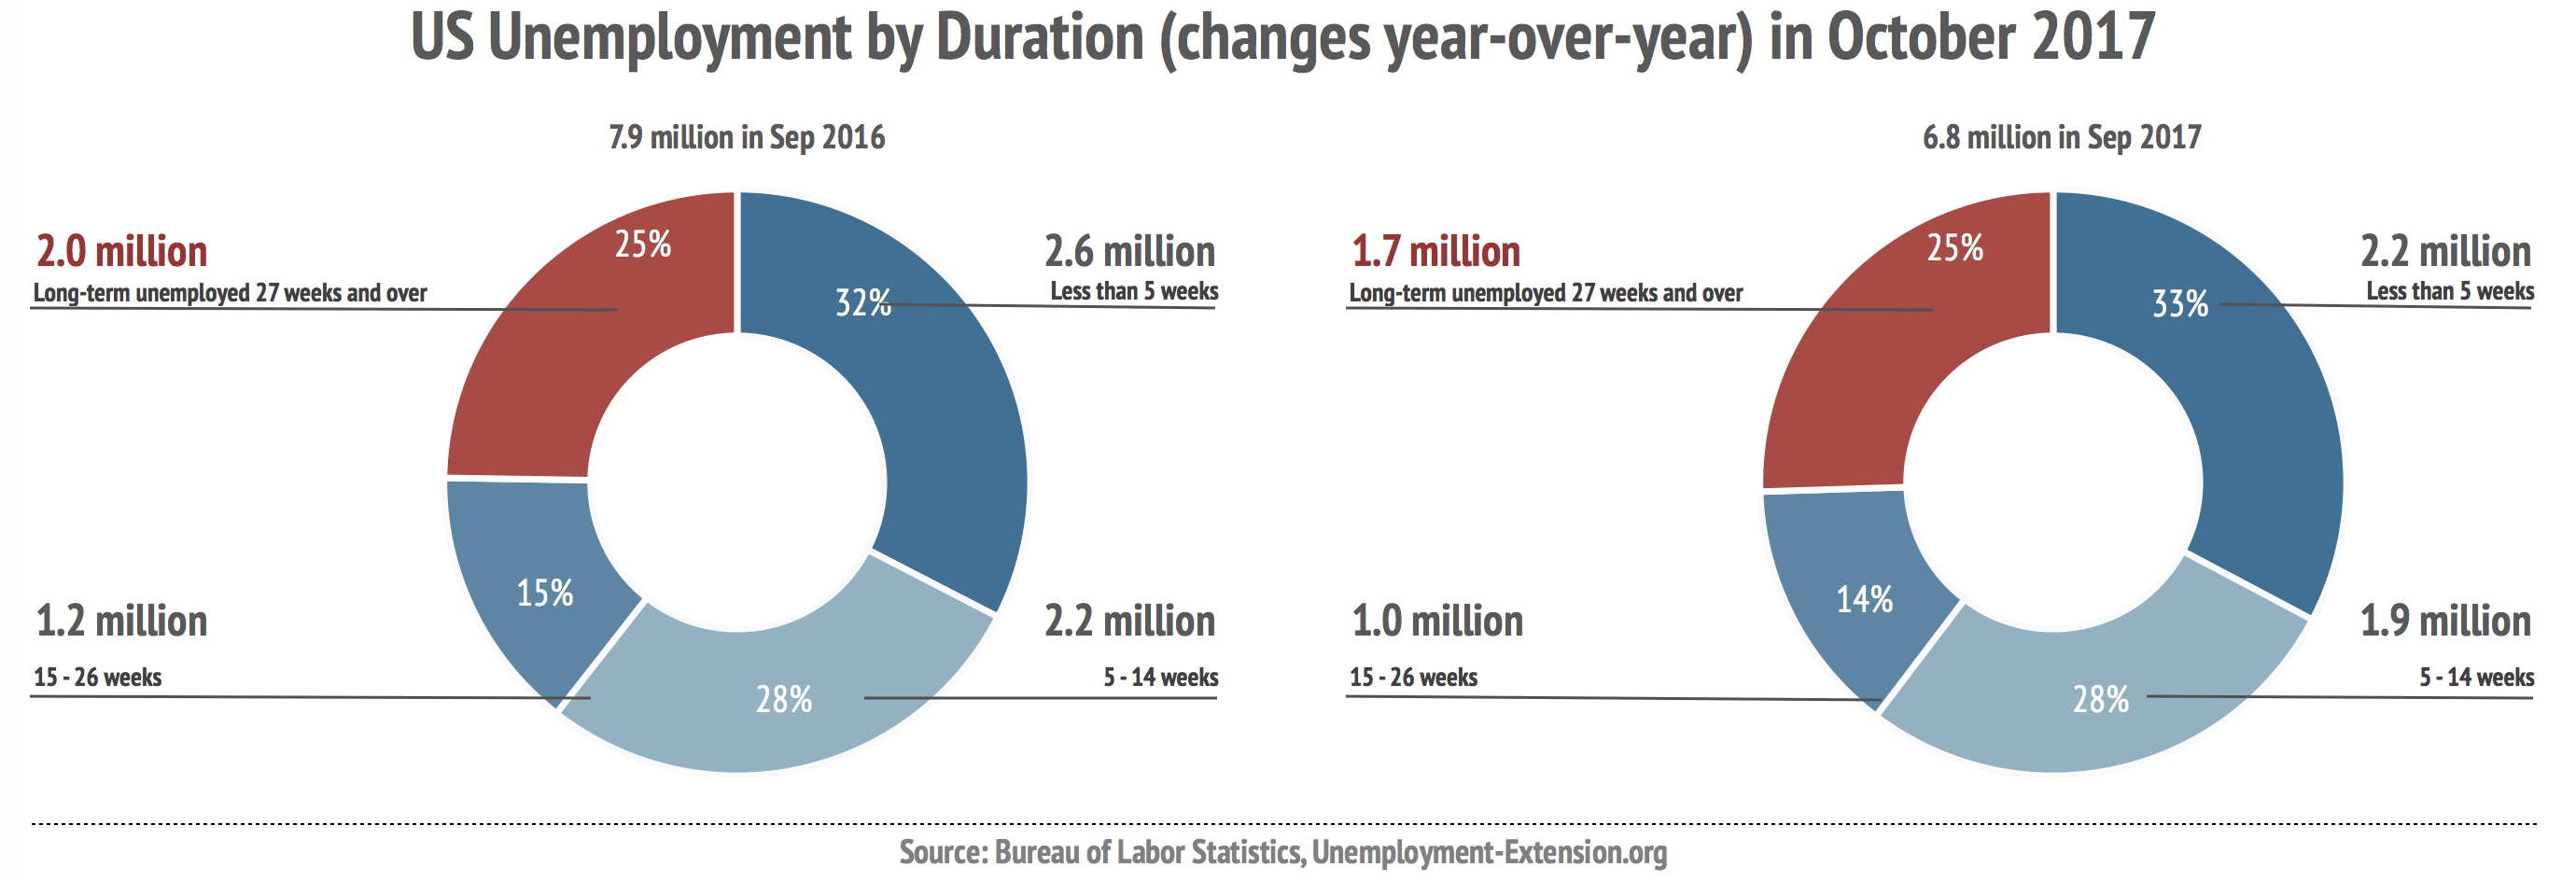 Unemployment by duration of unemployment (non-farm, seasonally adjusted) in September of 2017 improved by 1,135,000 year-over-year: long-term unemployment (27 weeks and over) decreased by 230,000; mid-term (5-26 weeks) decreased by 547,000; short-term (less than 5 weeks) increased by 358,000